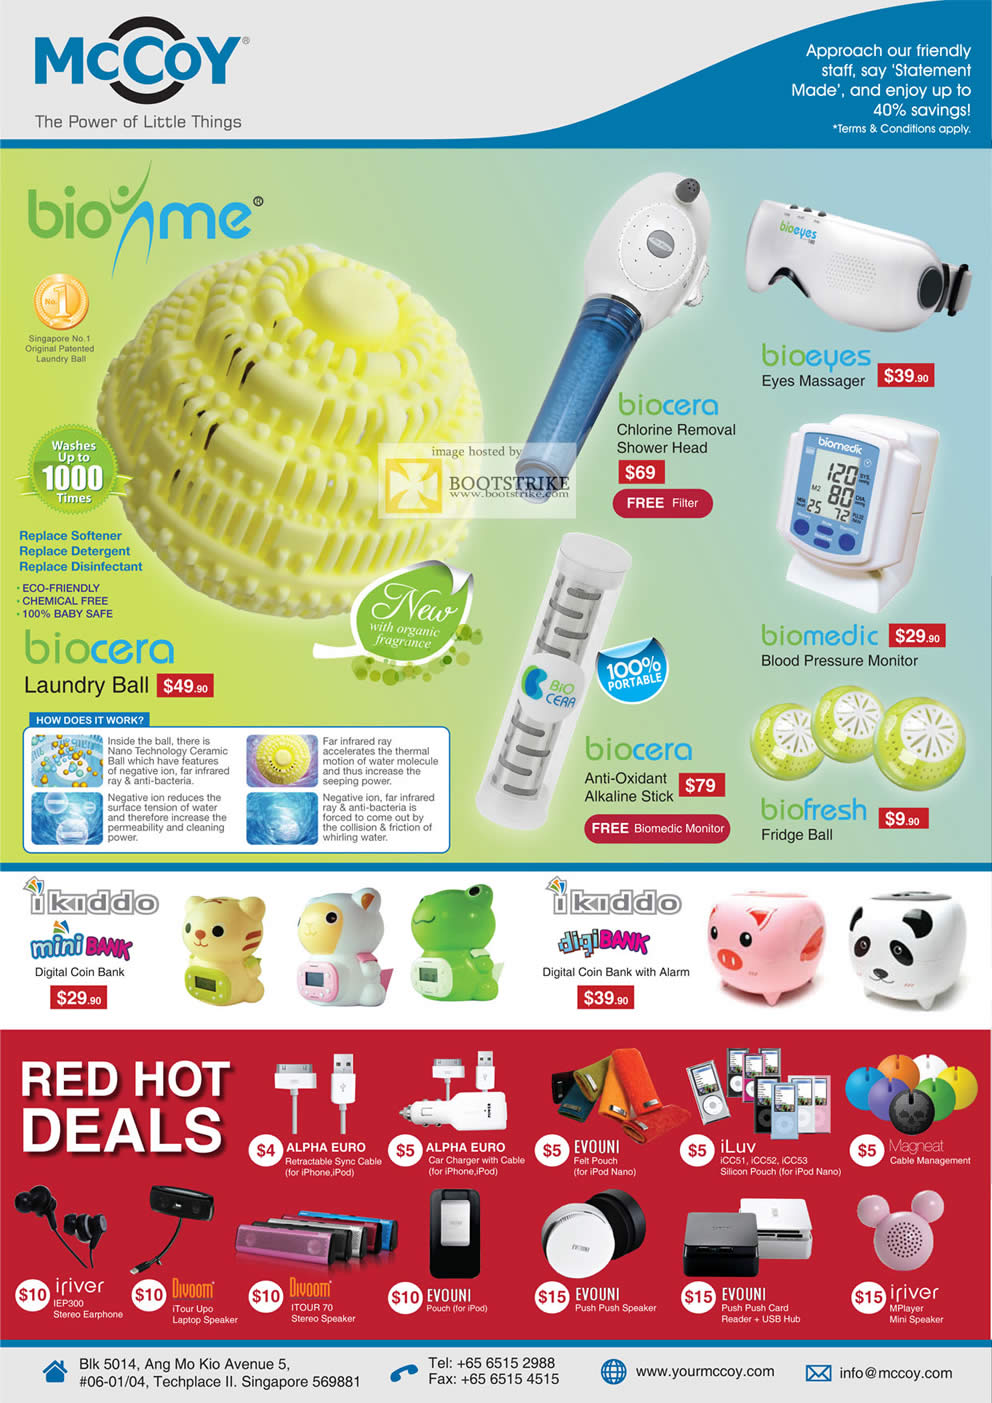 SITEX 2011 price list image brochure of Mccoy Biounme Laundry Ball, Biocera, Bioeyes, Biomedic, Biofresh, Ikiddo Mini Bank Digital Coin Bank, DigiBank Alarm, IRiver Earphone, Divoom ITour Speaker, Evouni, ILuv, Magneat